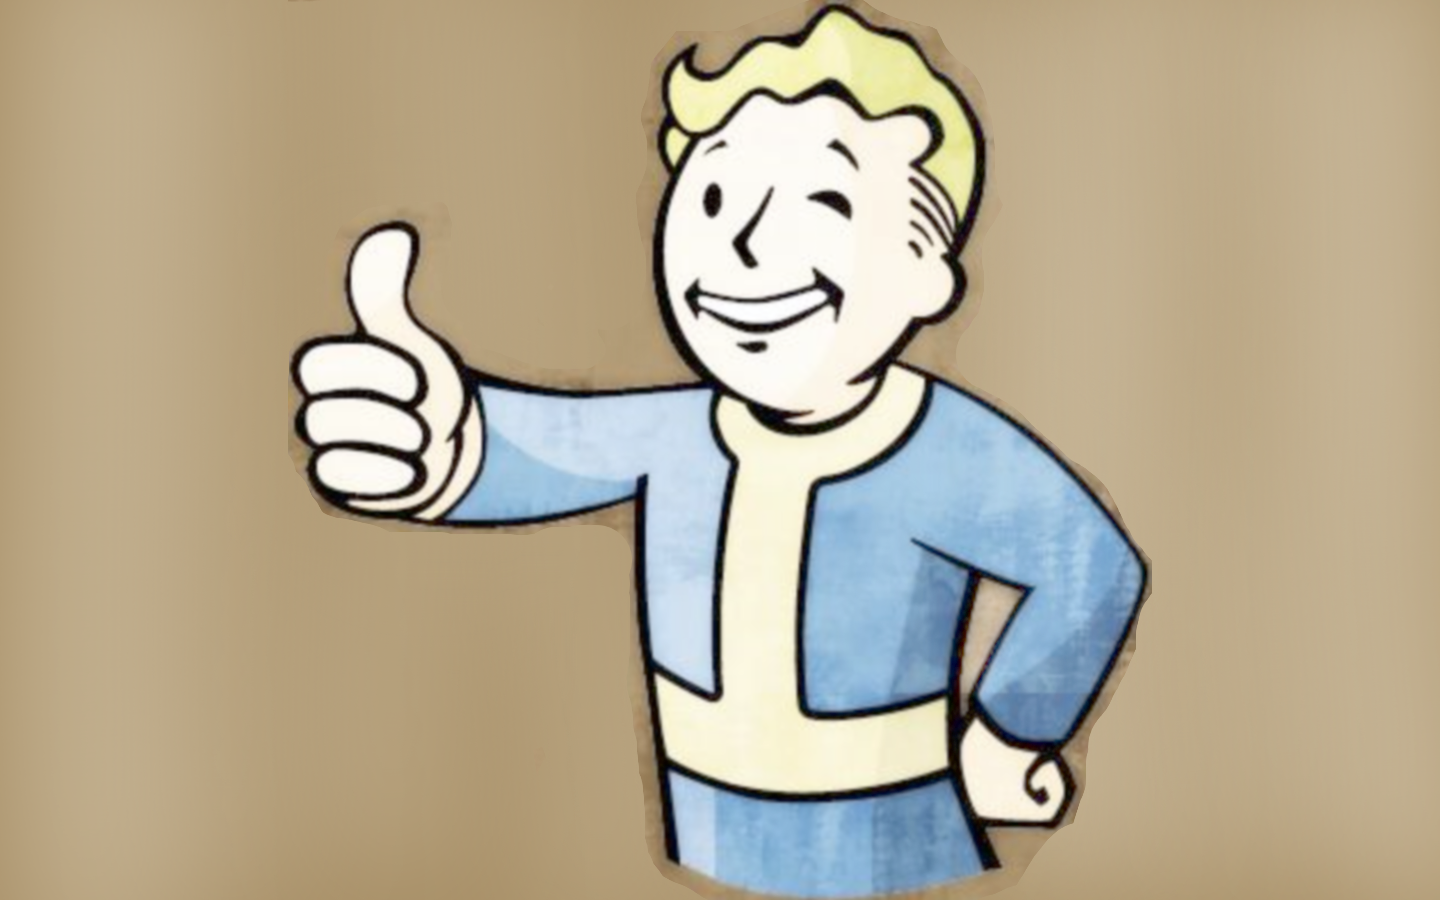 Free Download Fallout 3 Wallpaper Vault Boy Page 2 Fallout 3